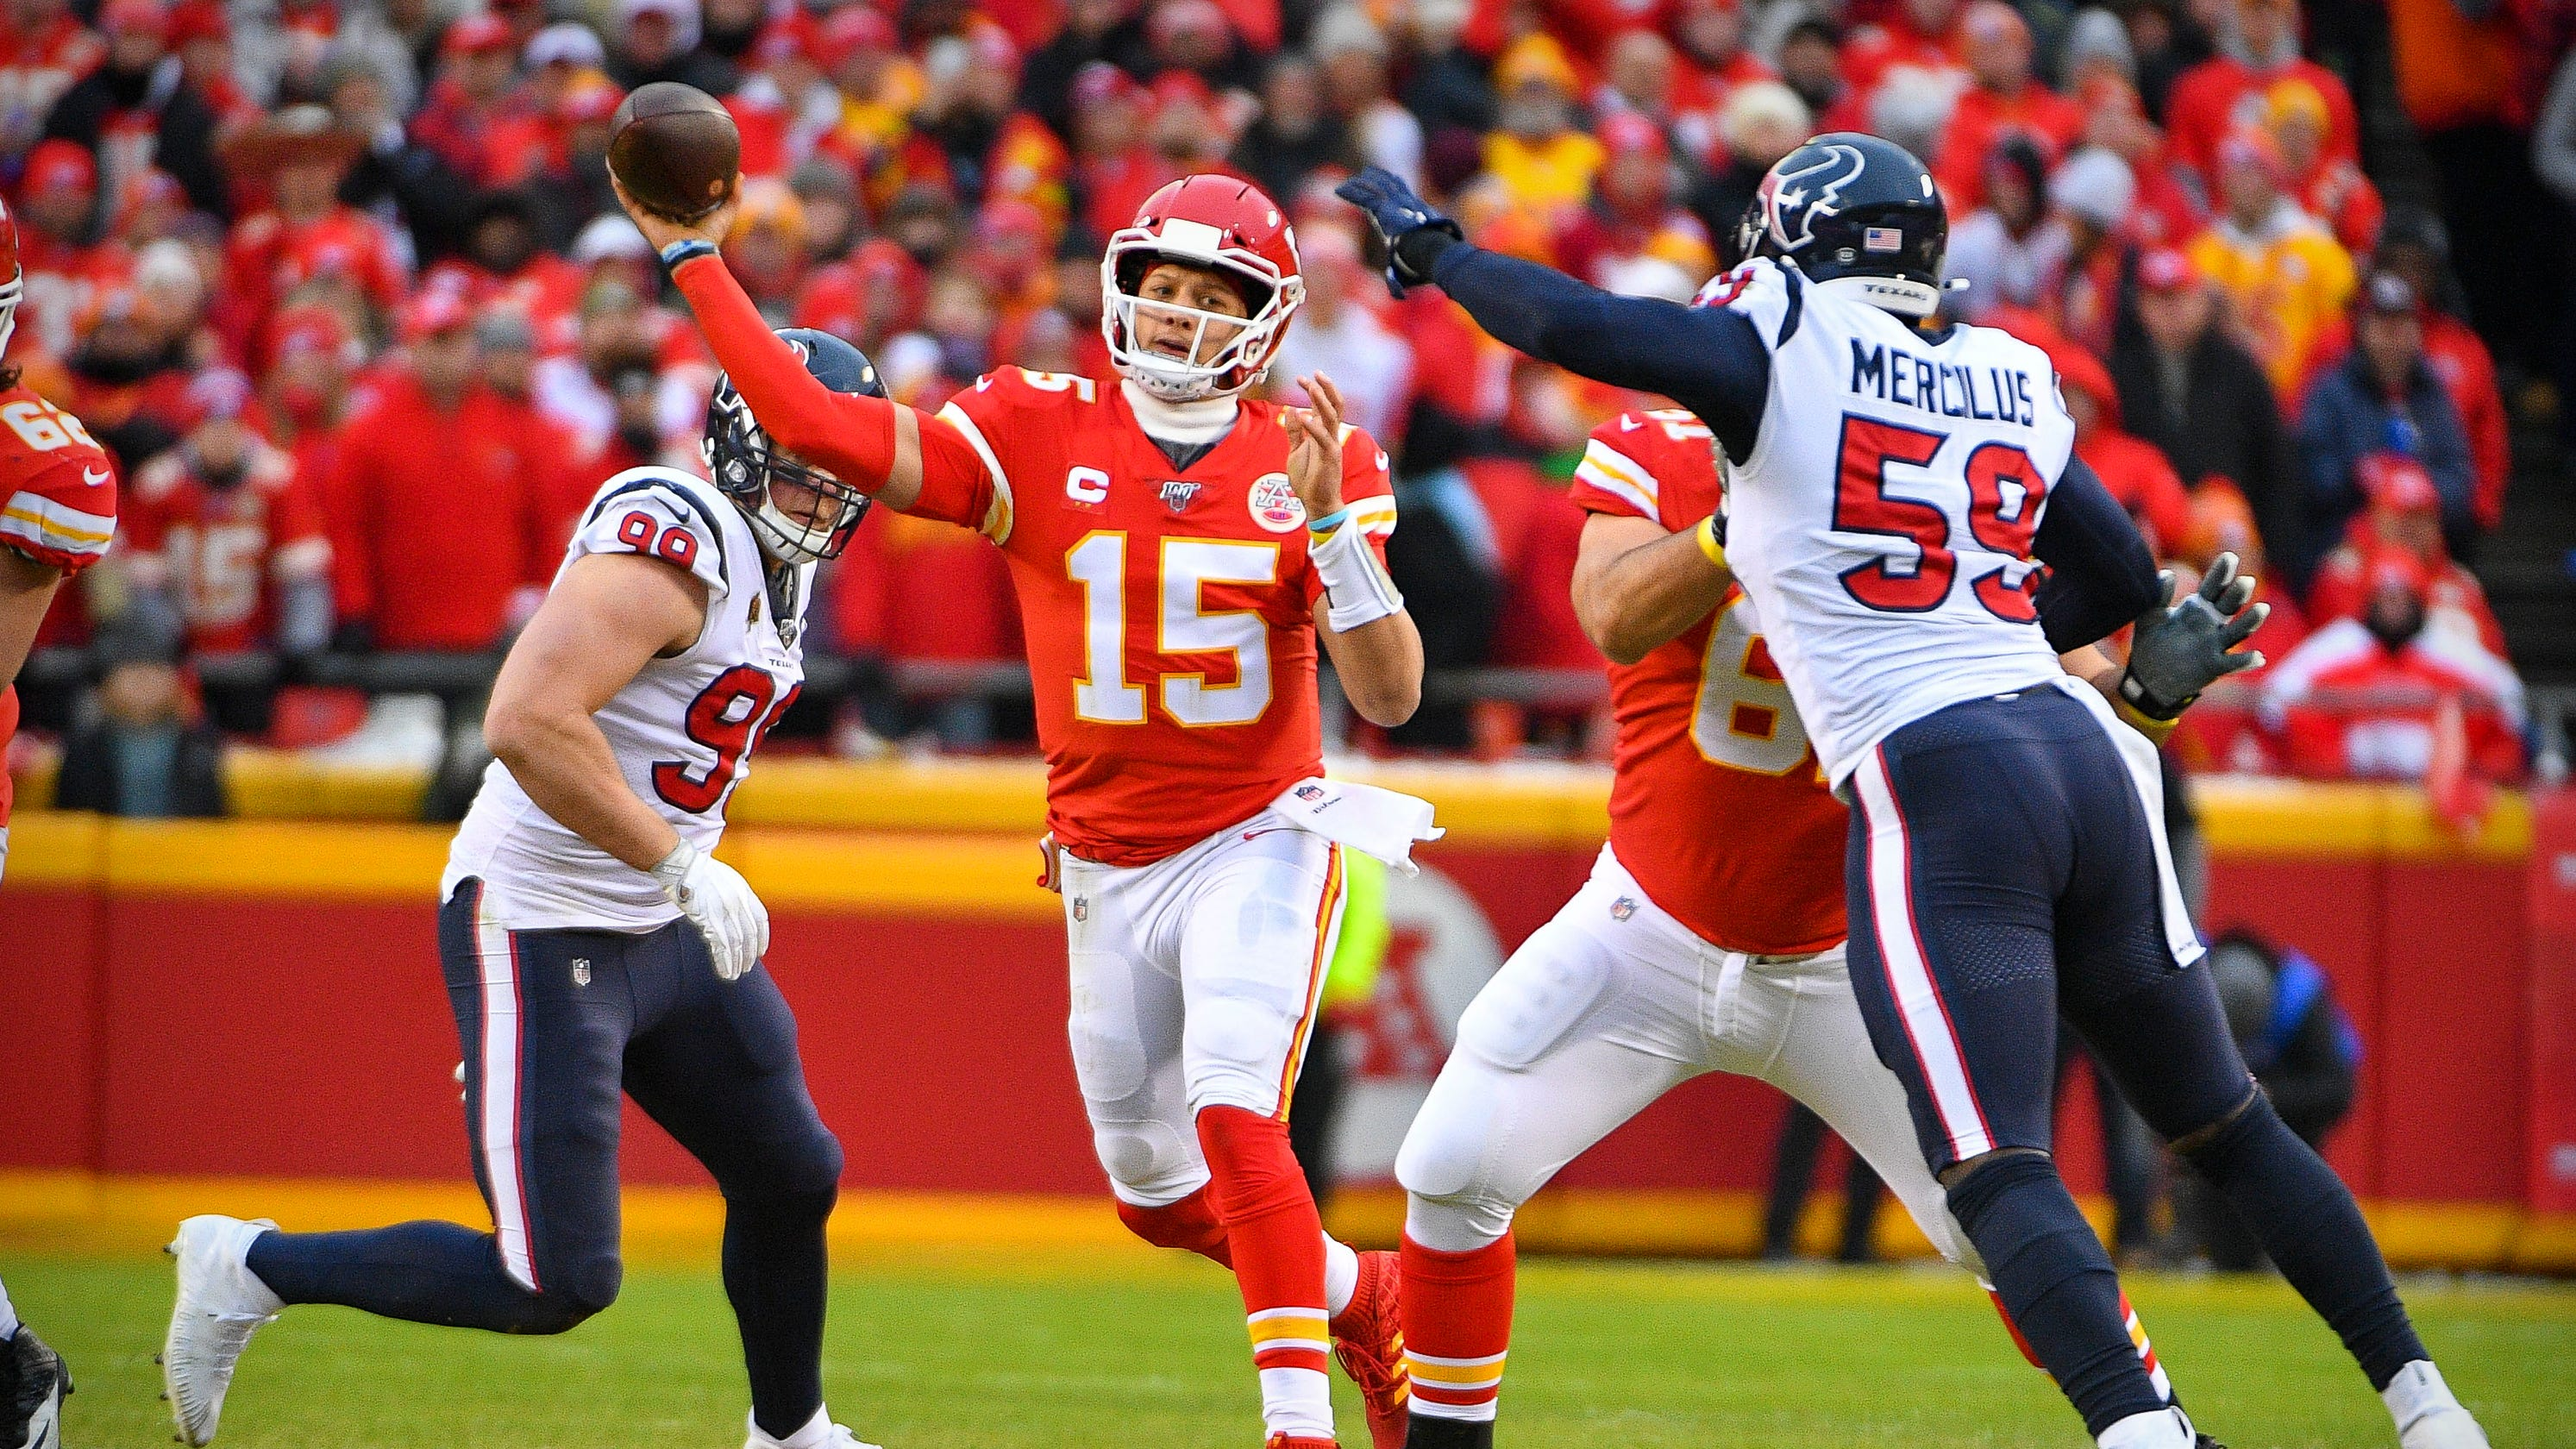 Houston Texans vs. Kansas City Chiefs: Time, date, channel, how to watch NFL kickoff game